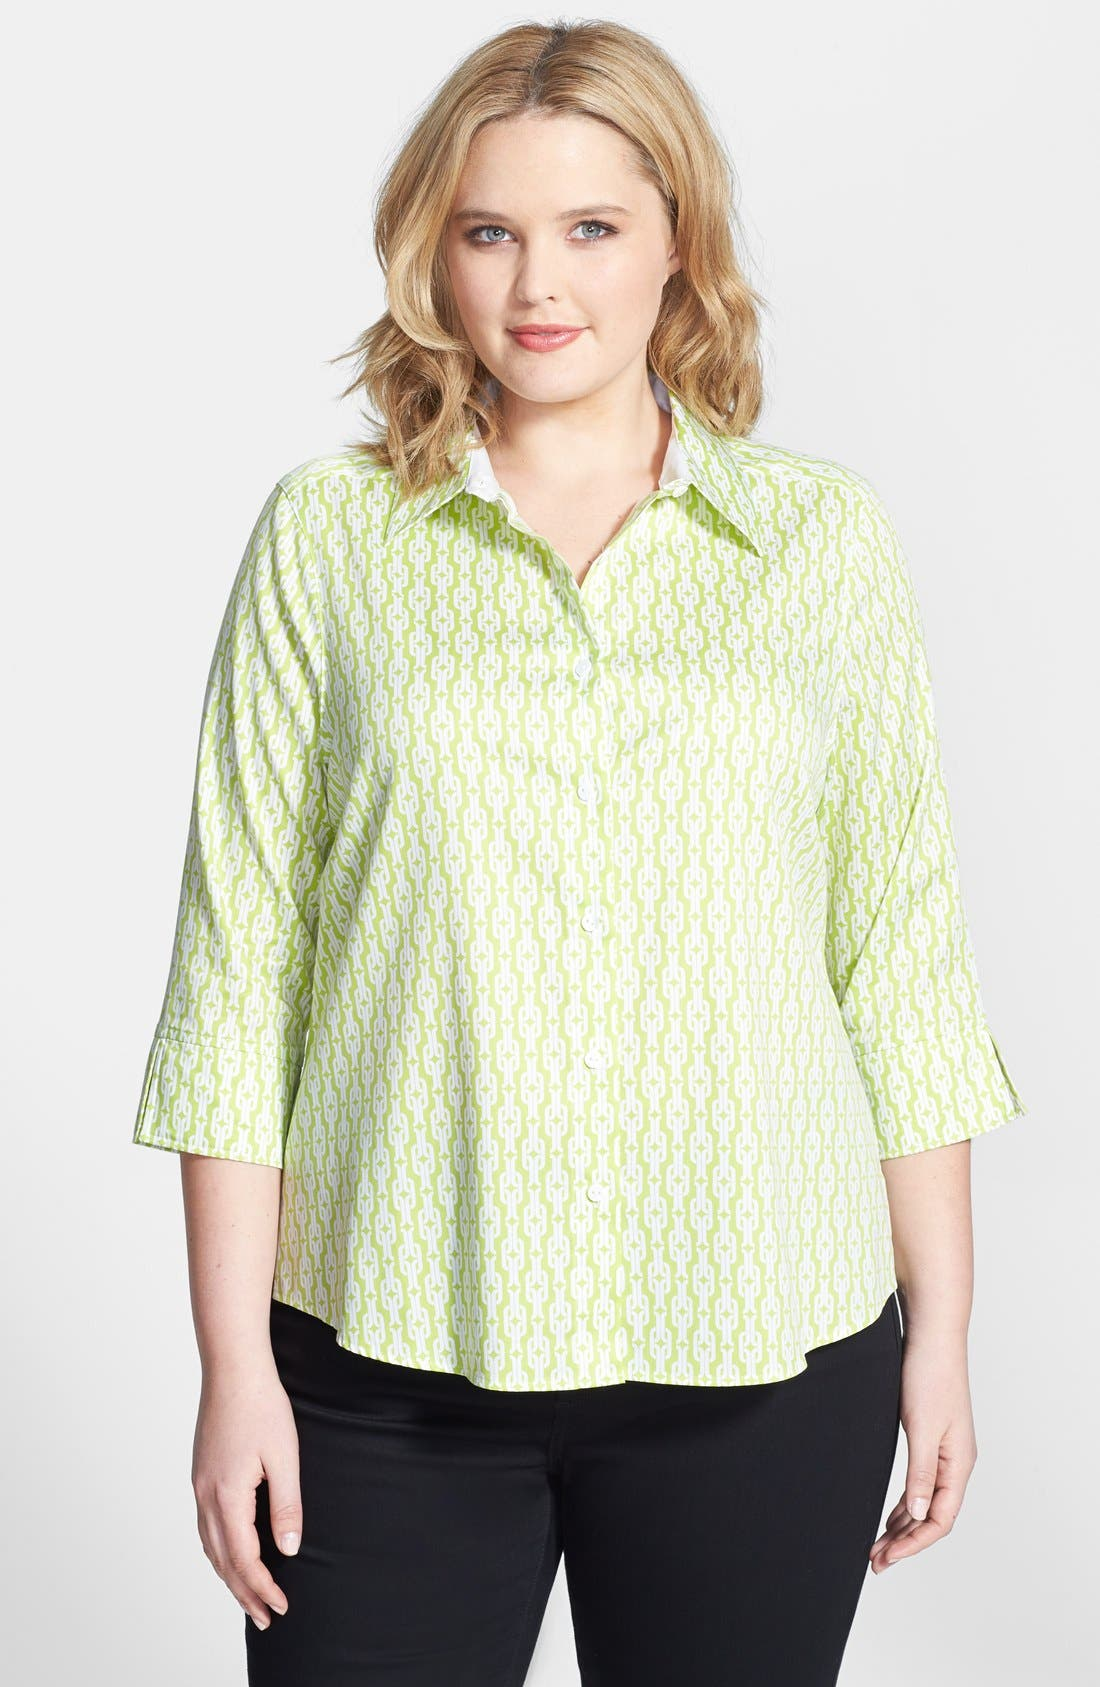 Alternate Image 1 Selected - Foxcroft Chain Link Print Shaped Non-Iron Cotton Shirt (Plus Size)